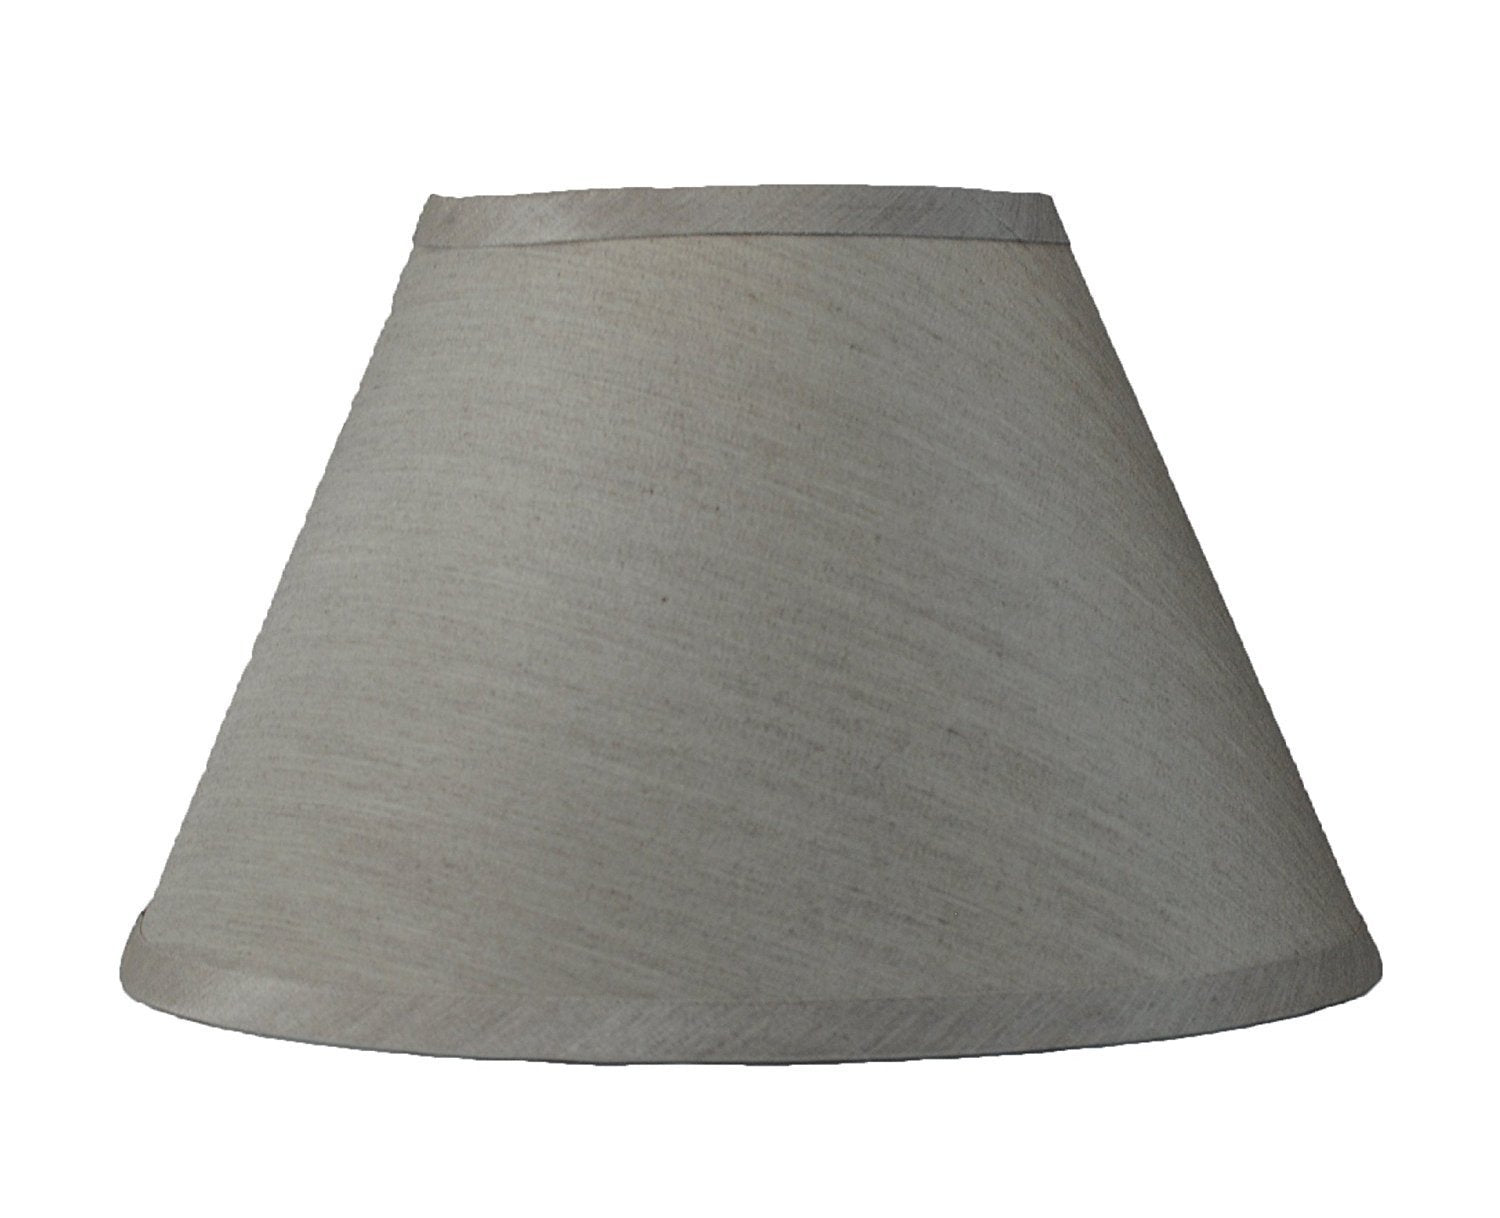 Coolie Hardback 12-inch Lampshade - 7 Colors